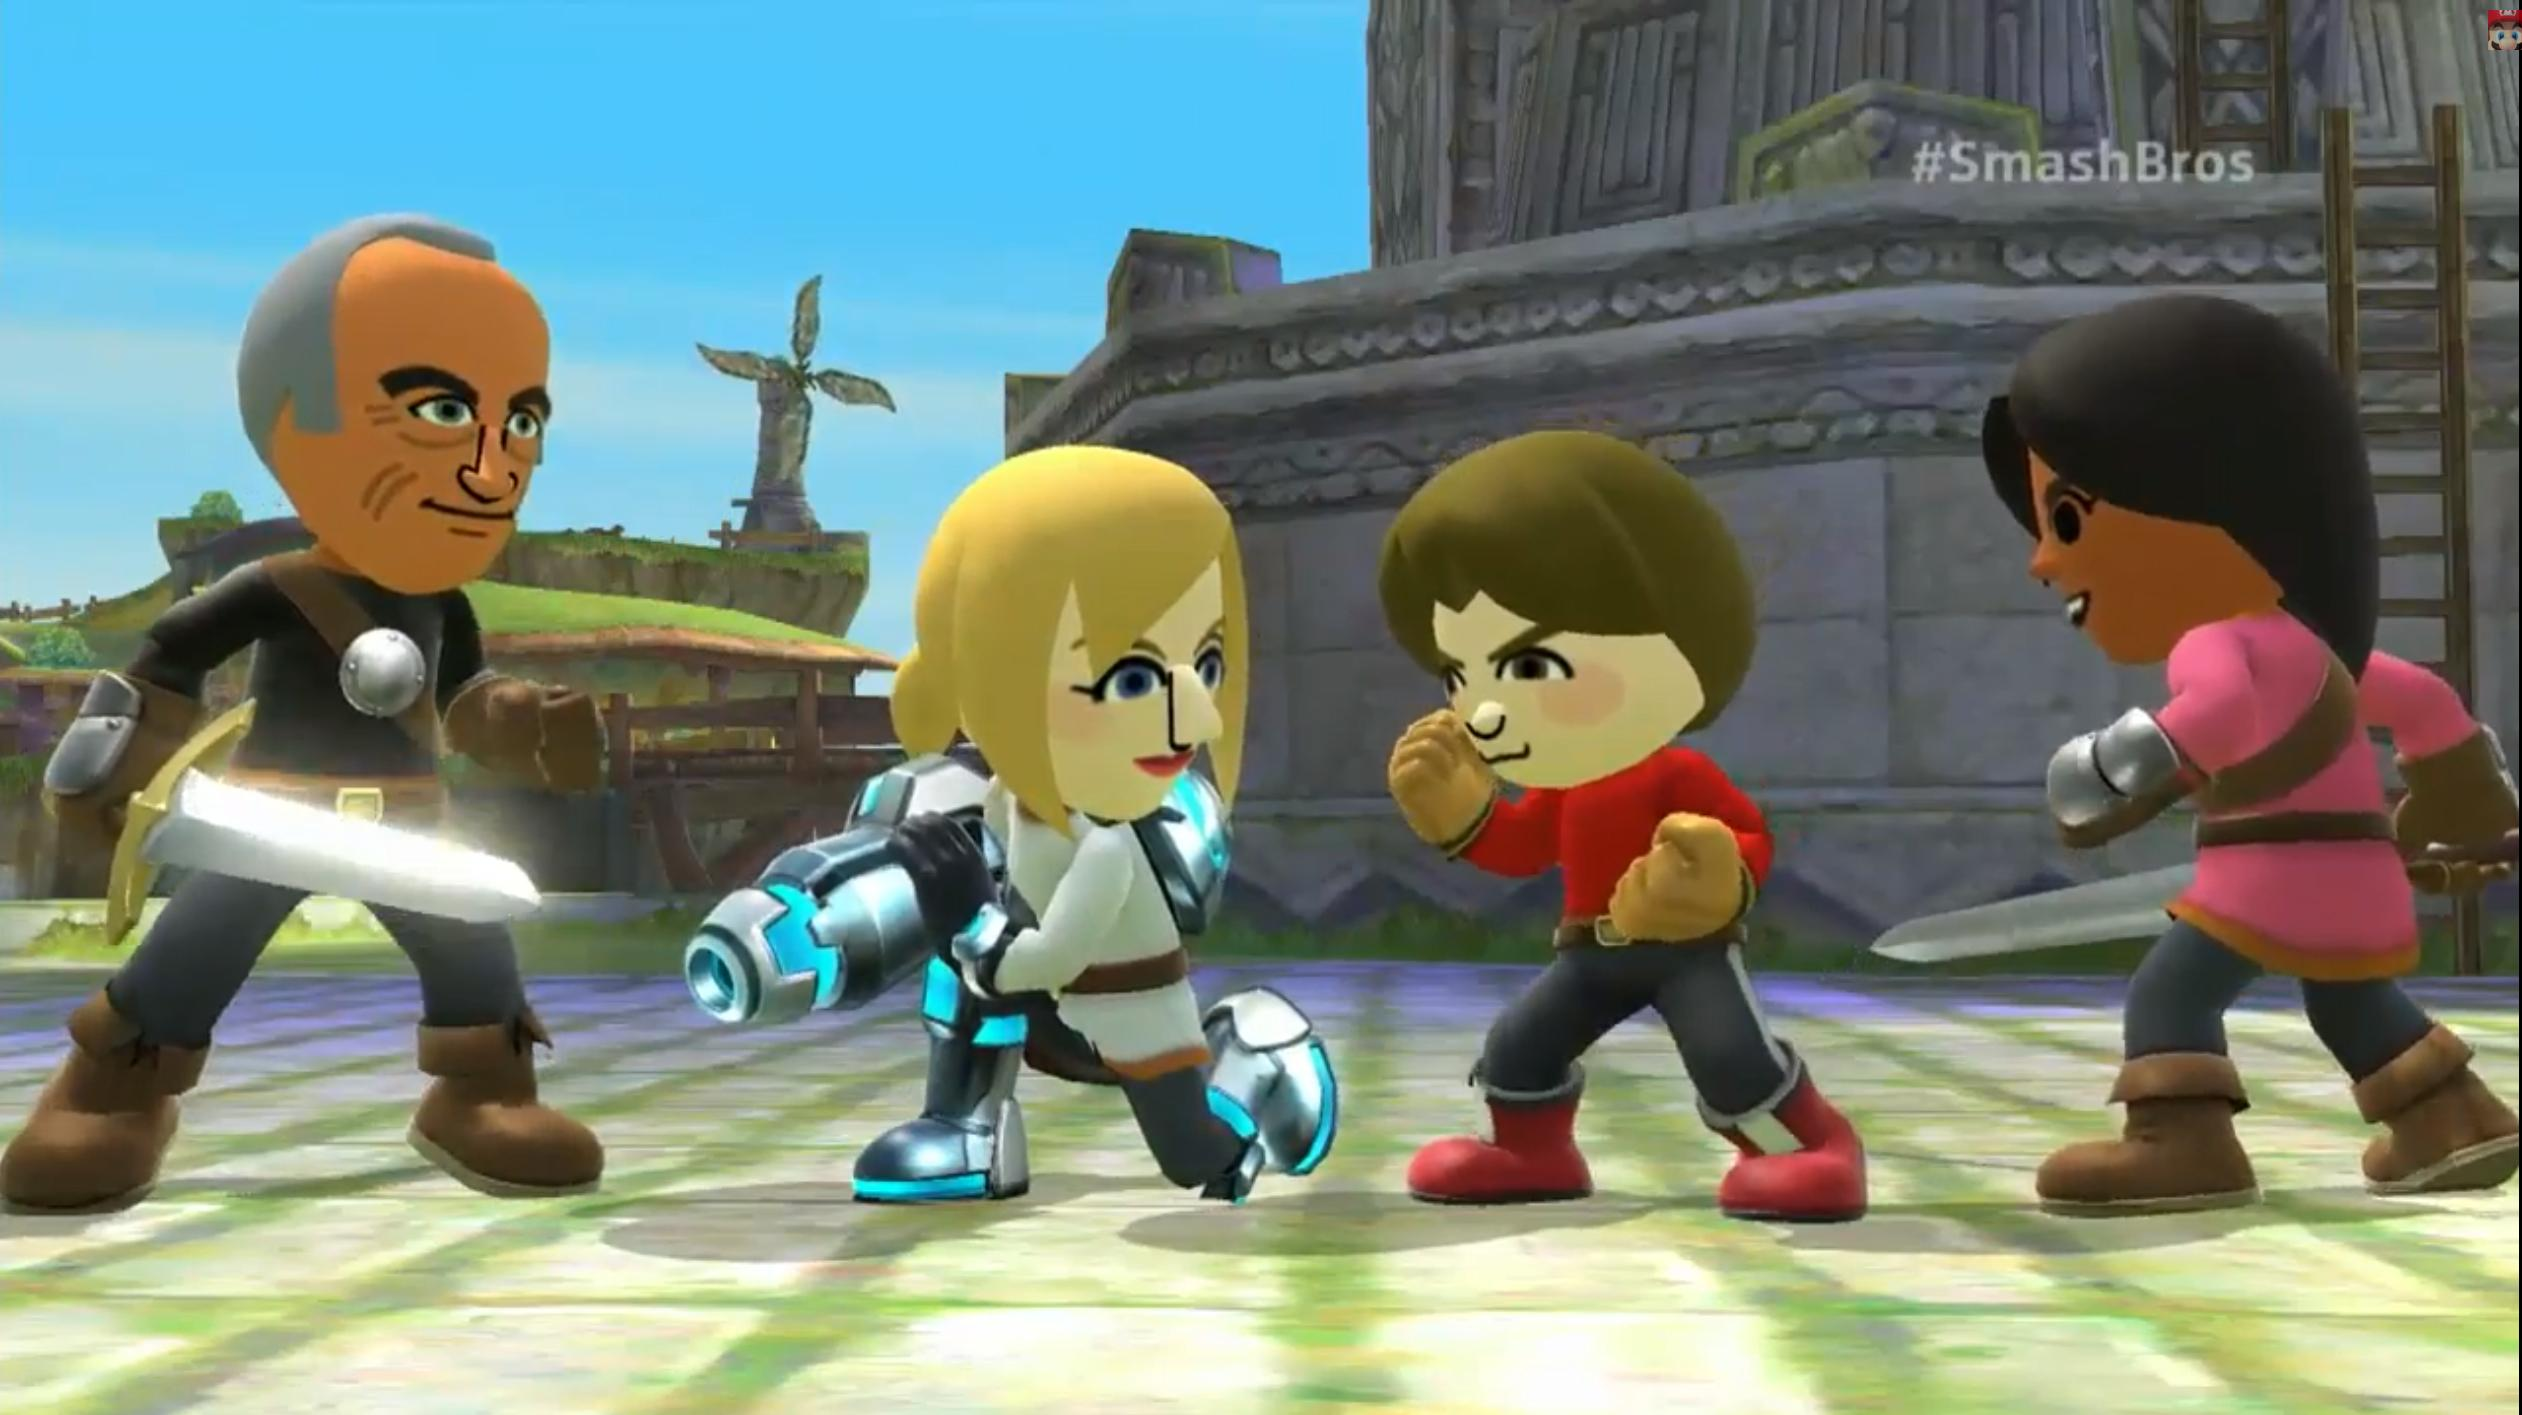 Super Smash Bros. out on Wii U this Christmas, play as your Mii!